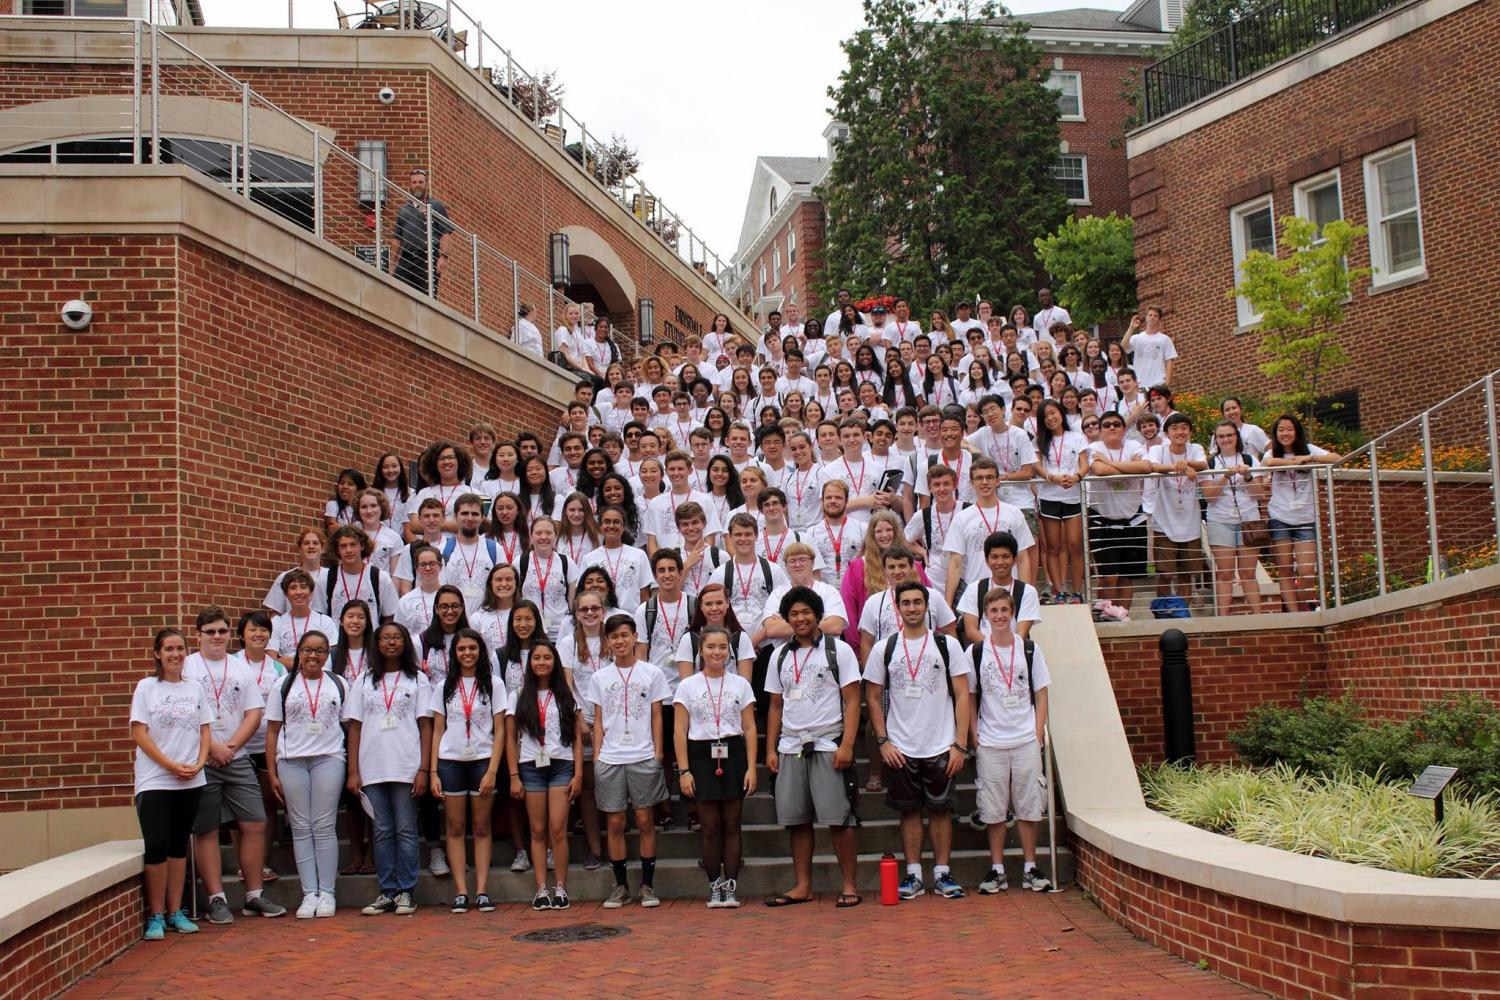 159+HS+juniors+and+seniors+were+selected+from+all+across+the+state+to+attend+the+Summer+Residential+Governor%27s+School+for+Math%2C+Science%2C+and+Technology+at+Lynchburg+College